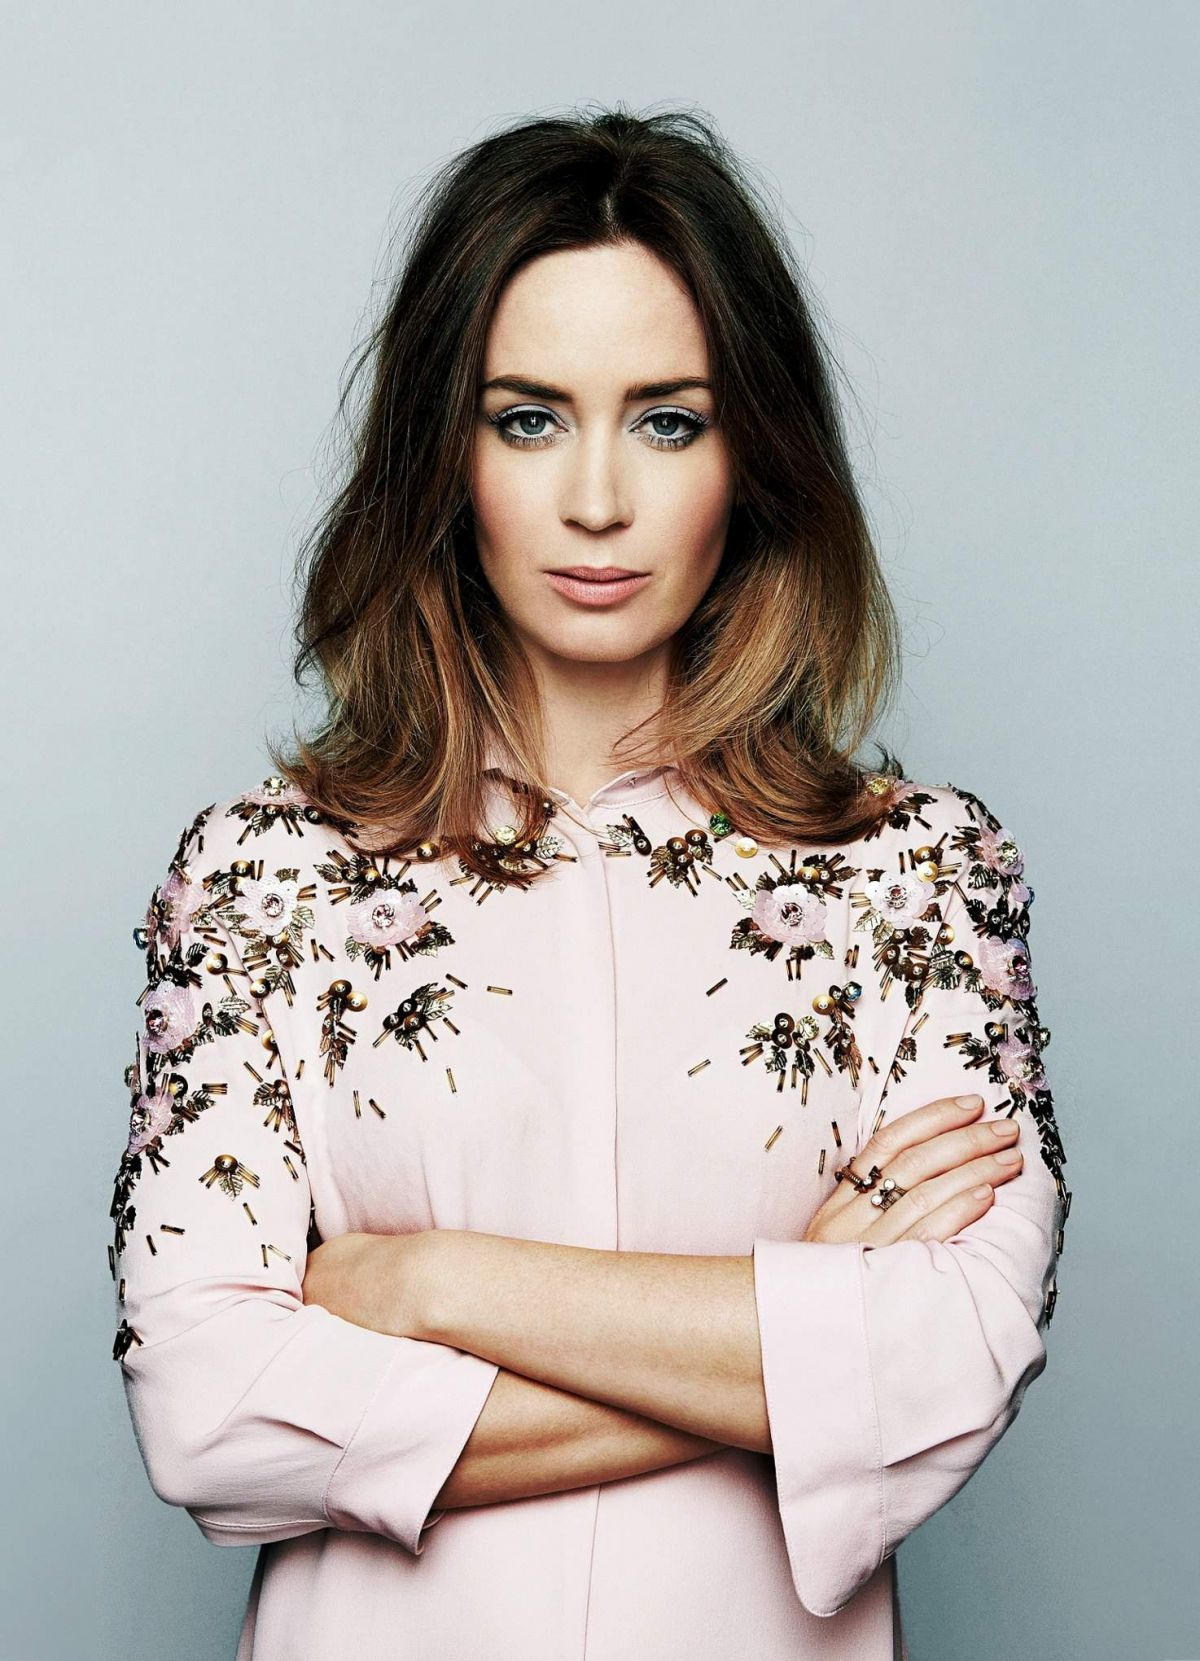 Emily Blunt photo gall...